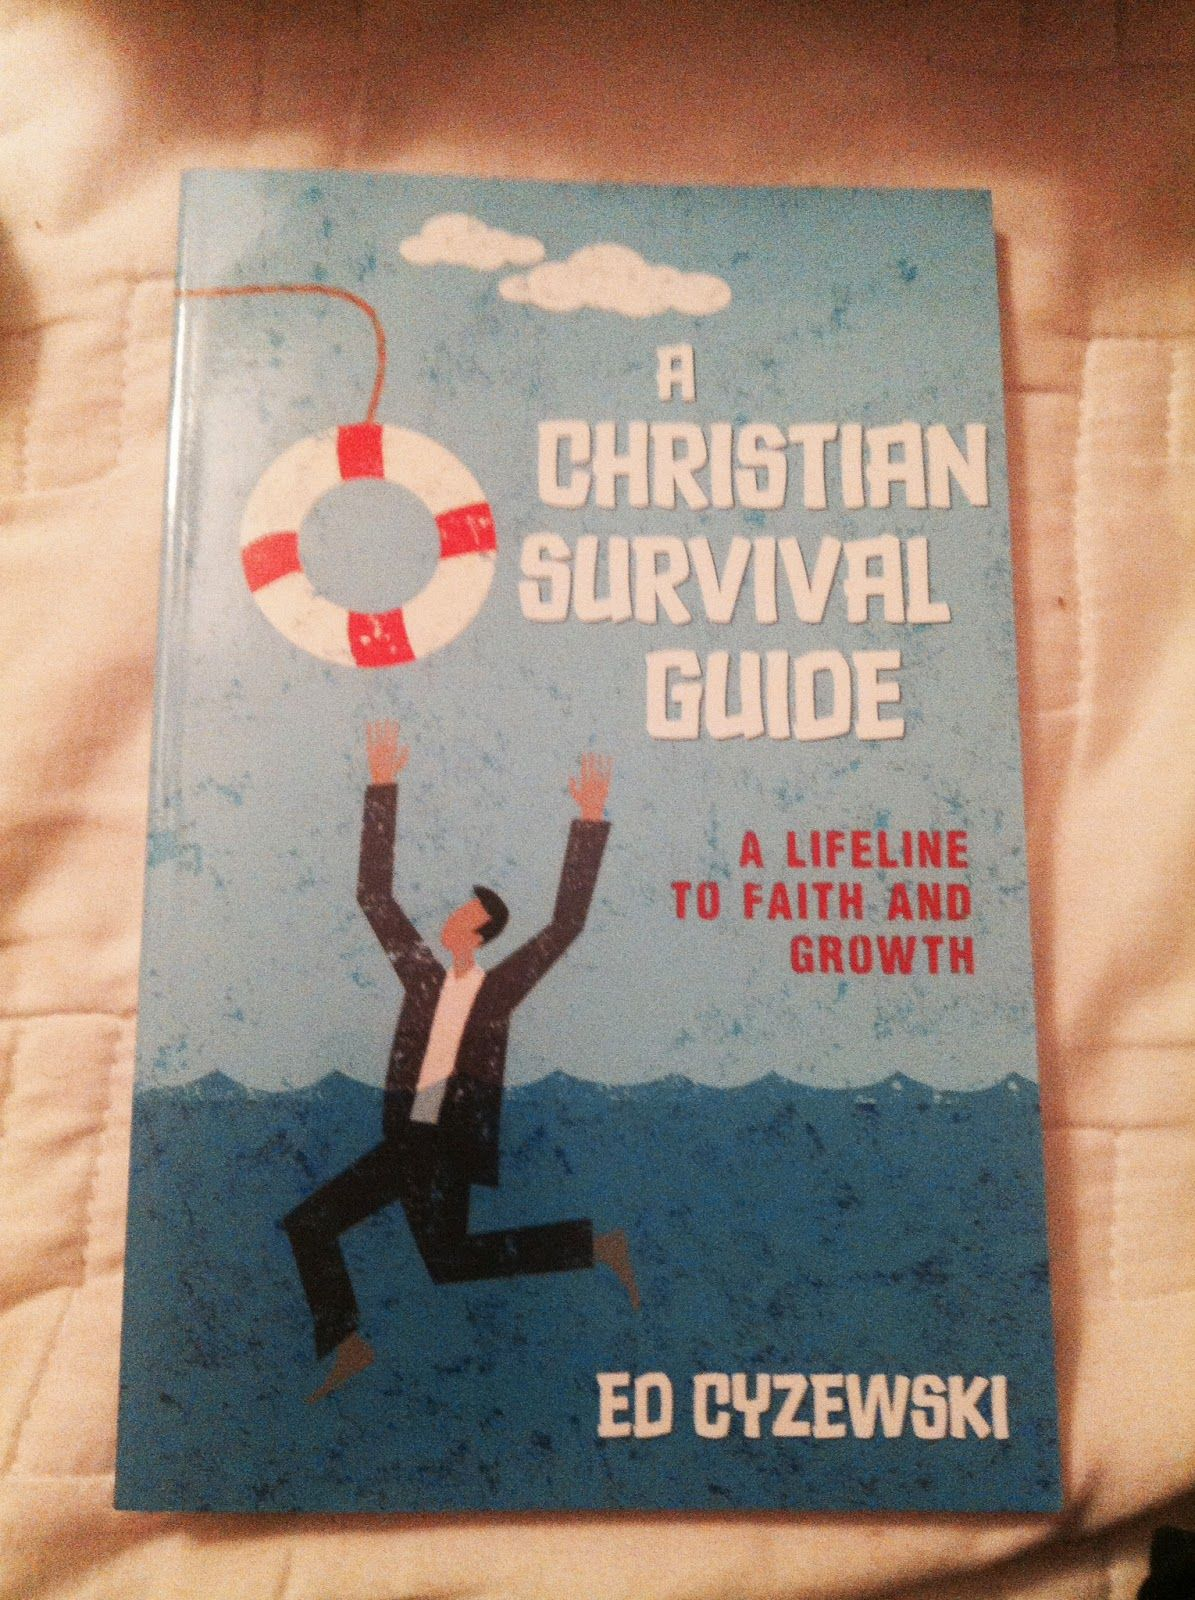 A Christian Survival Guide (full book review at link)